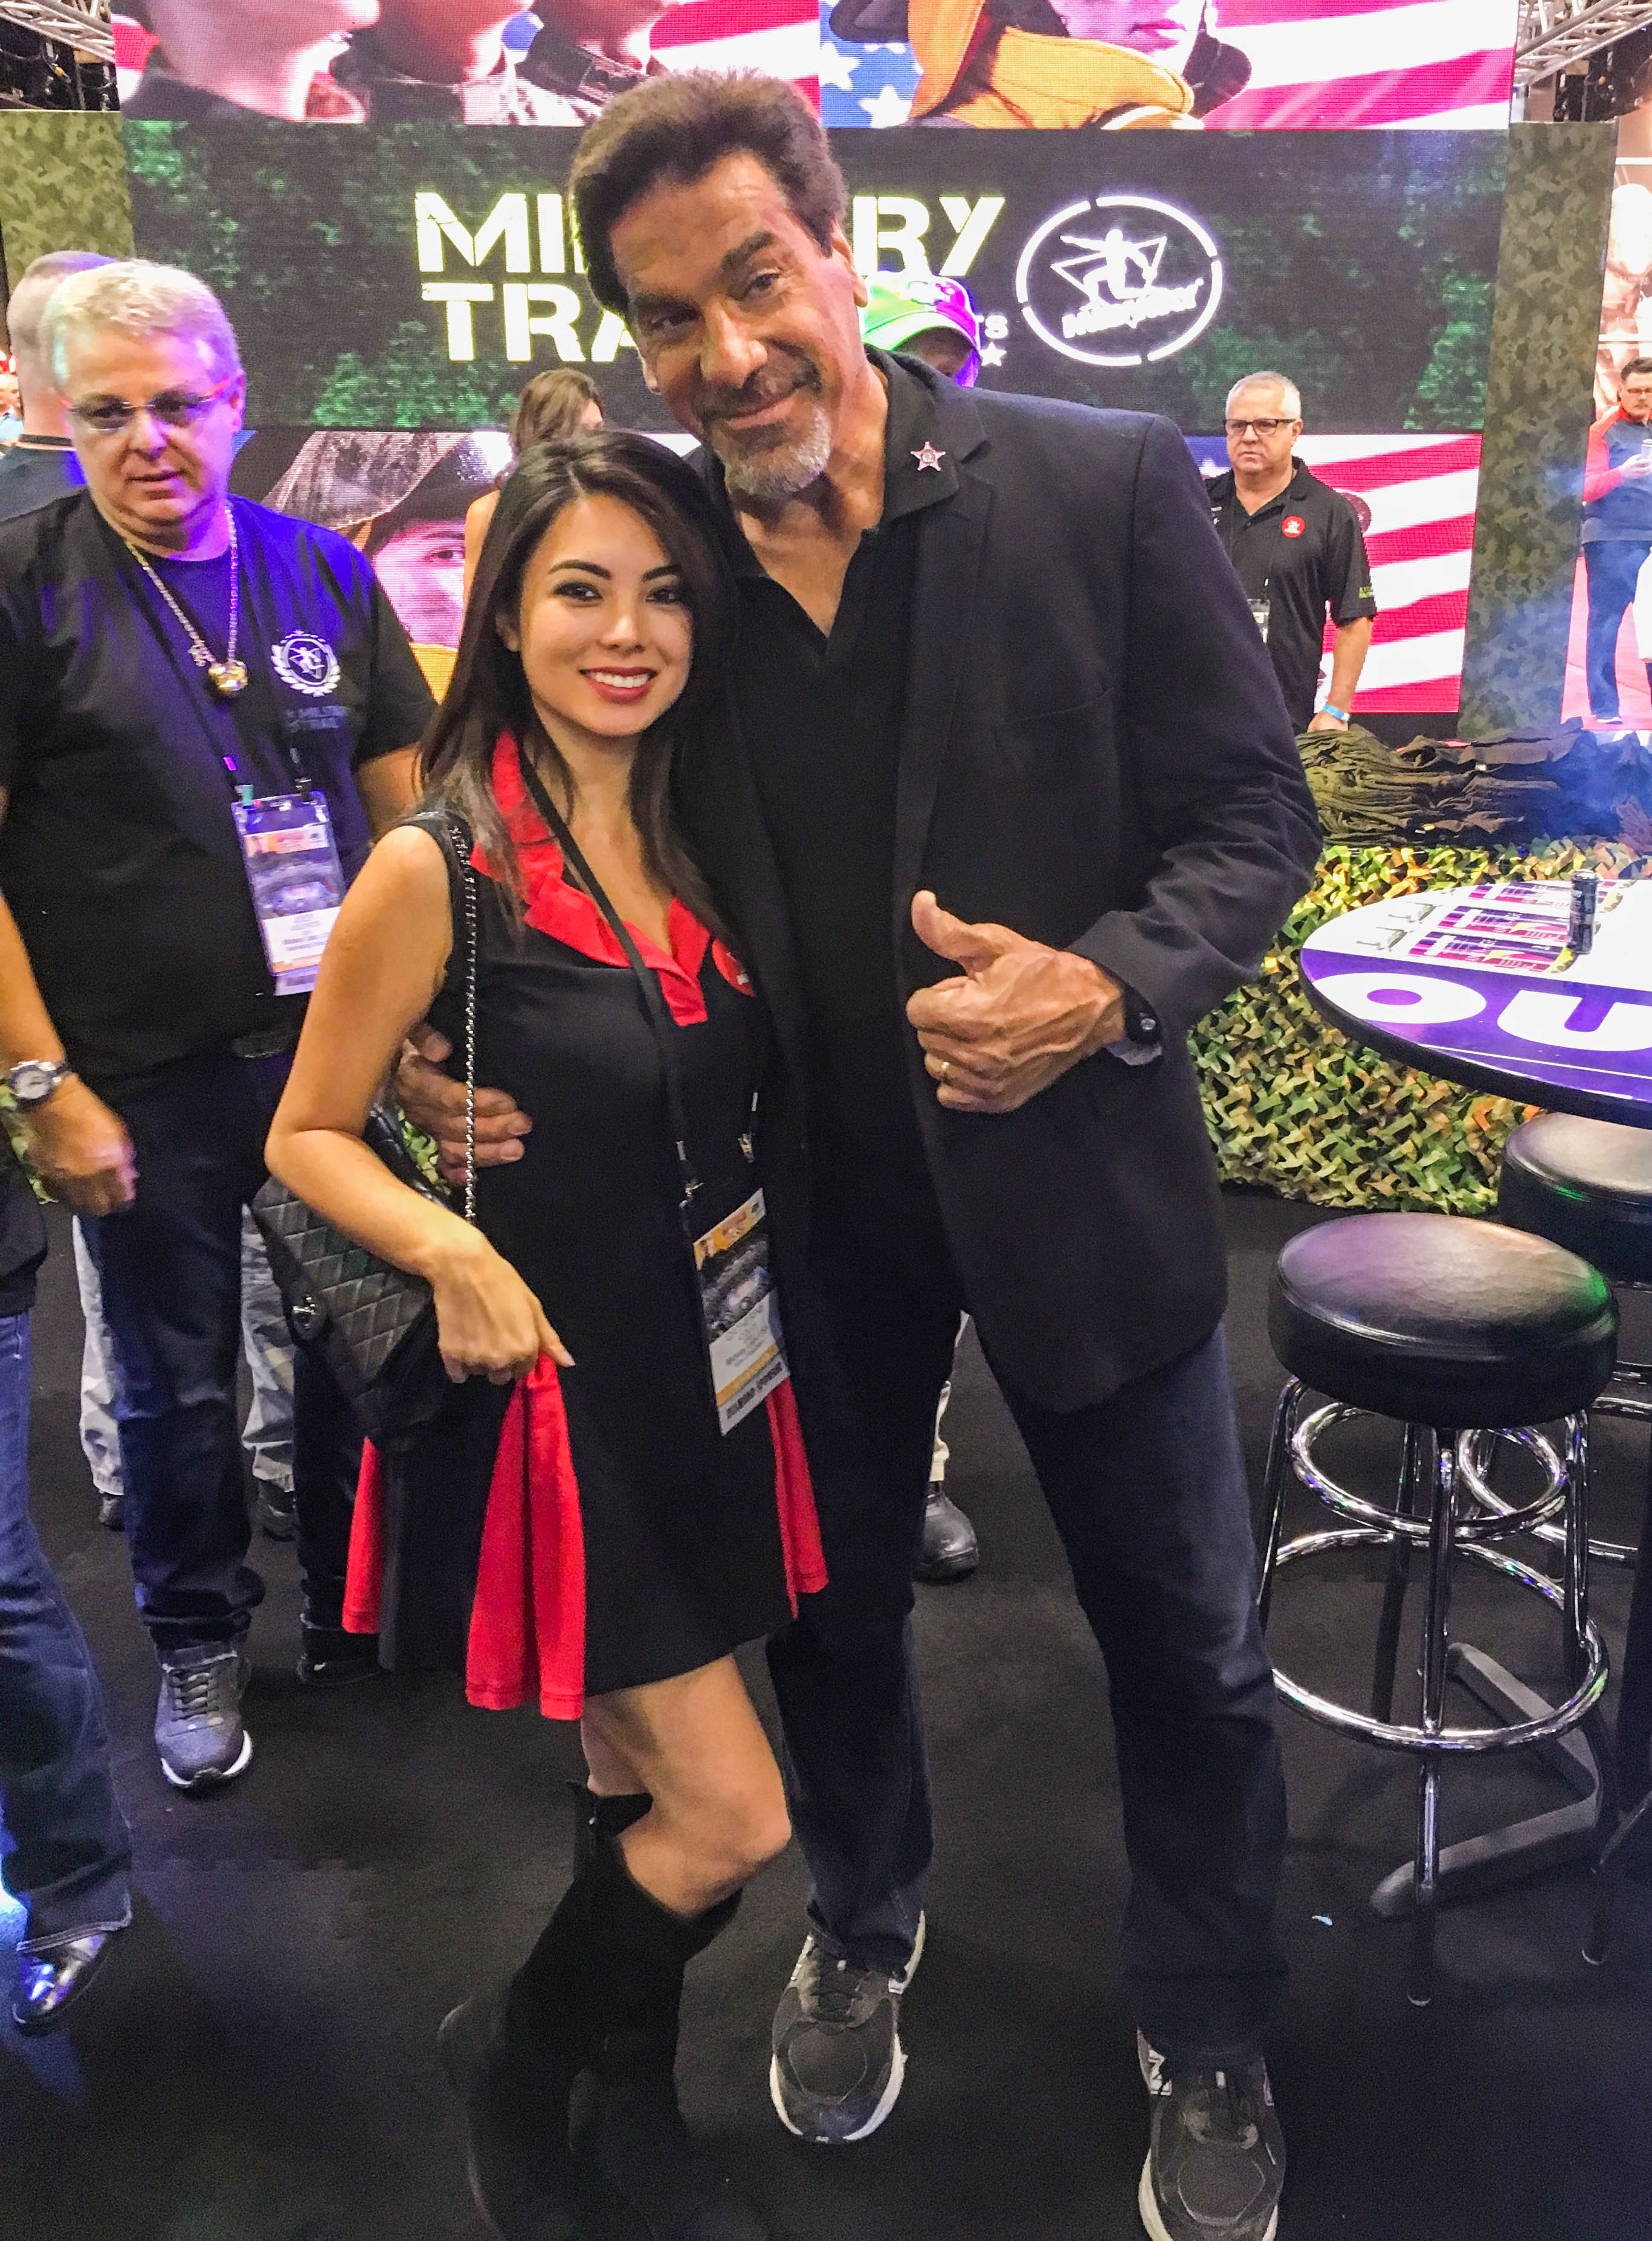 Midway Labs VP Catherine Colle & Lou Ferrigno at the booth.